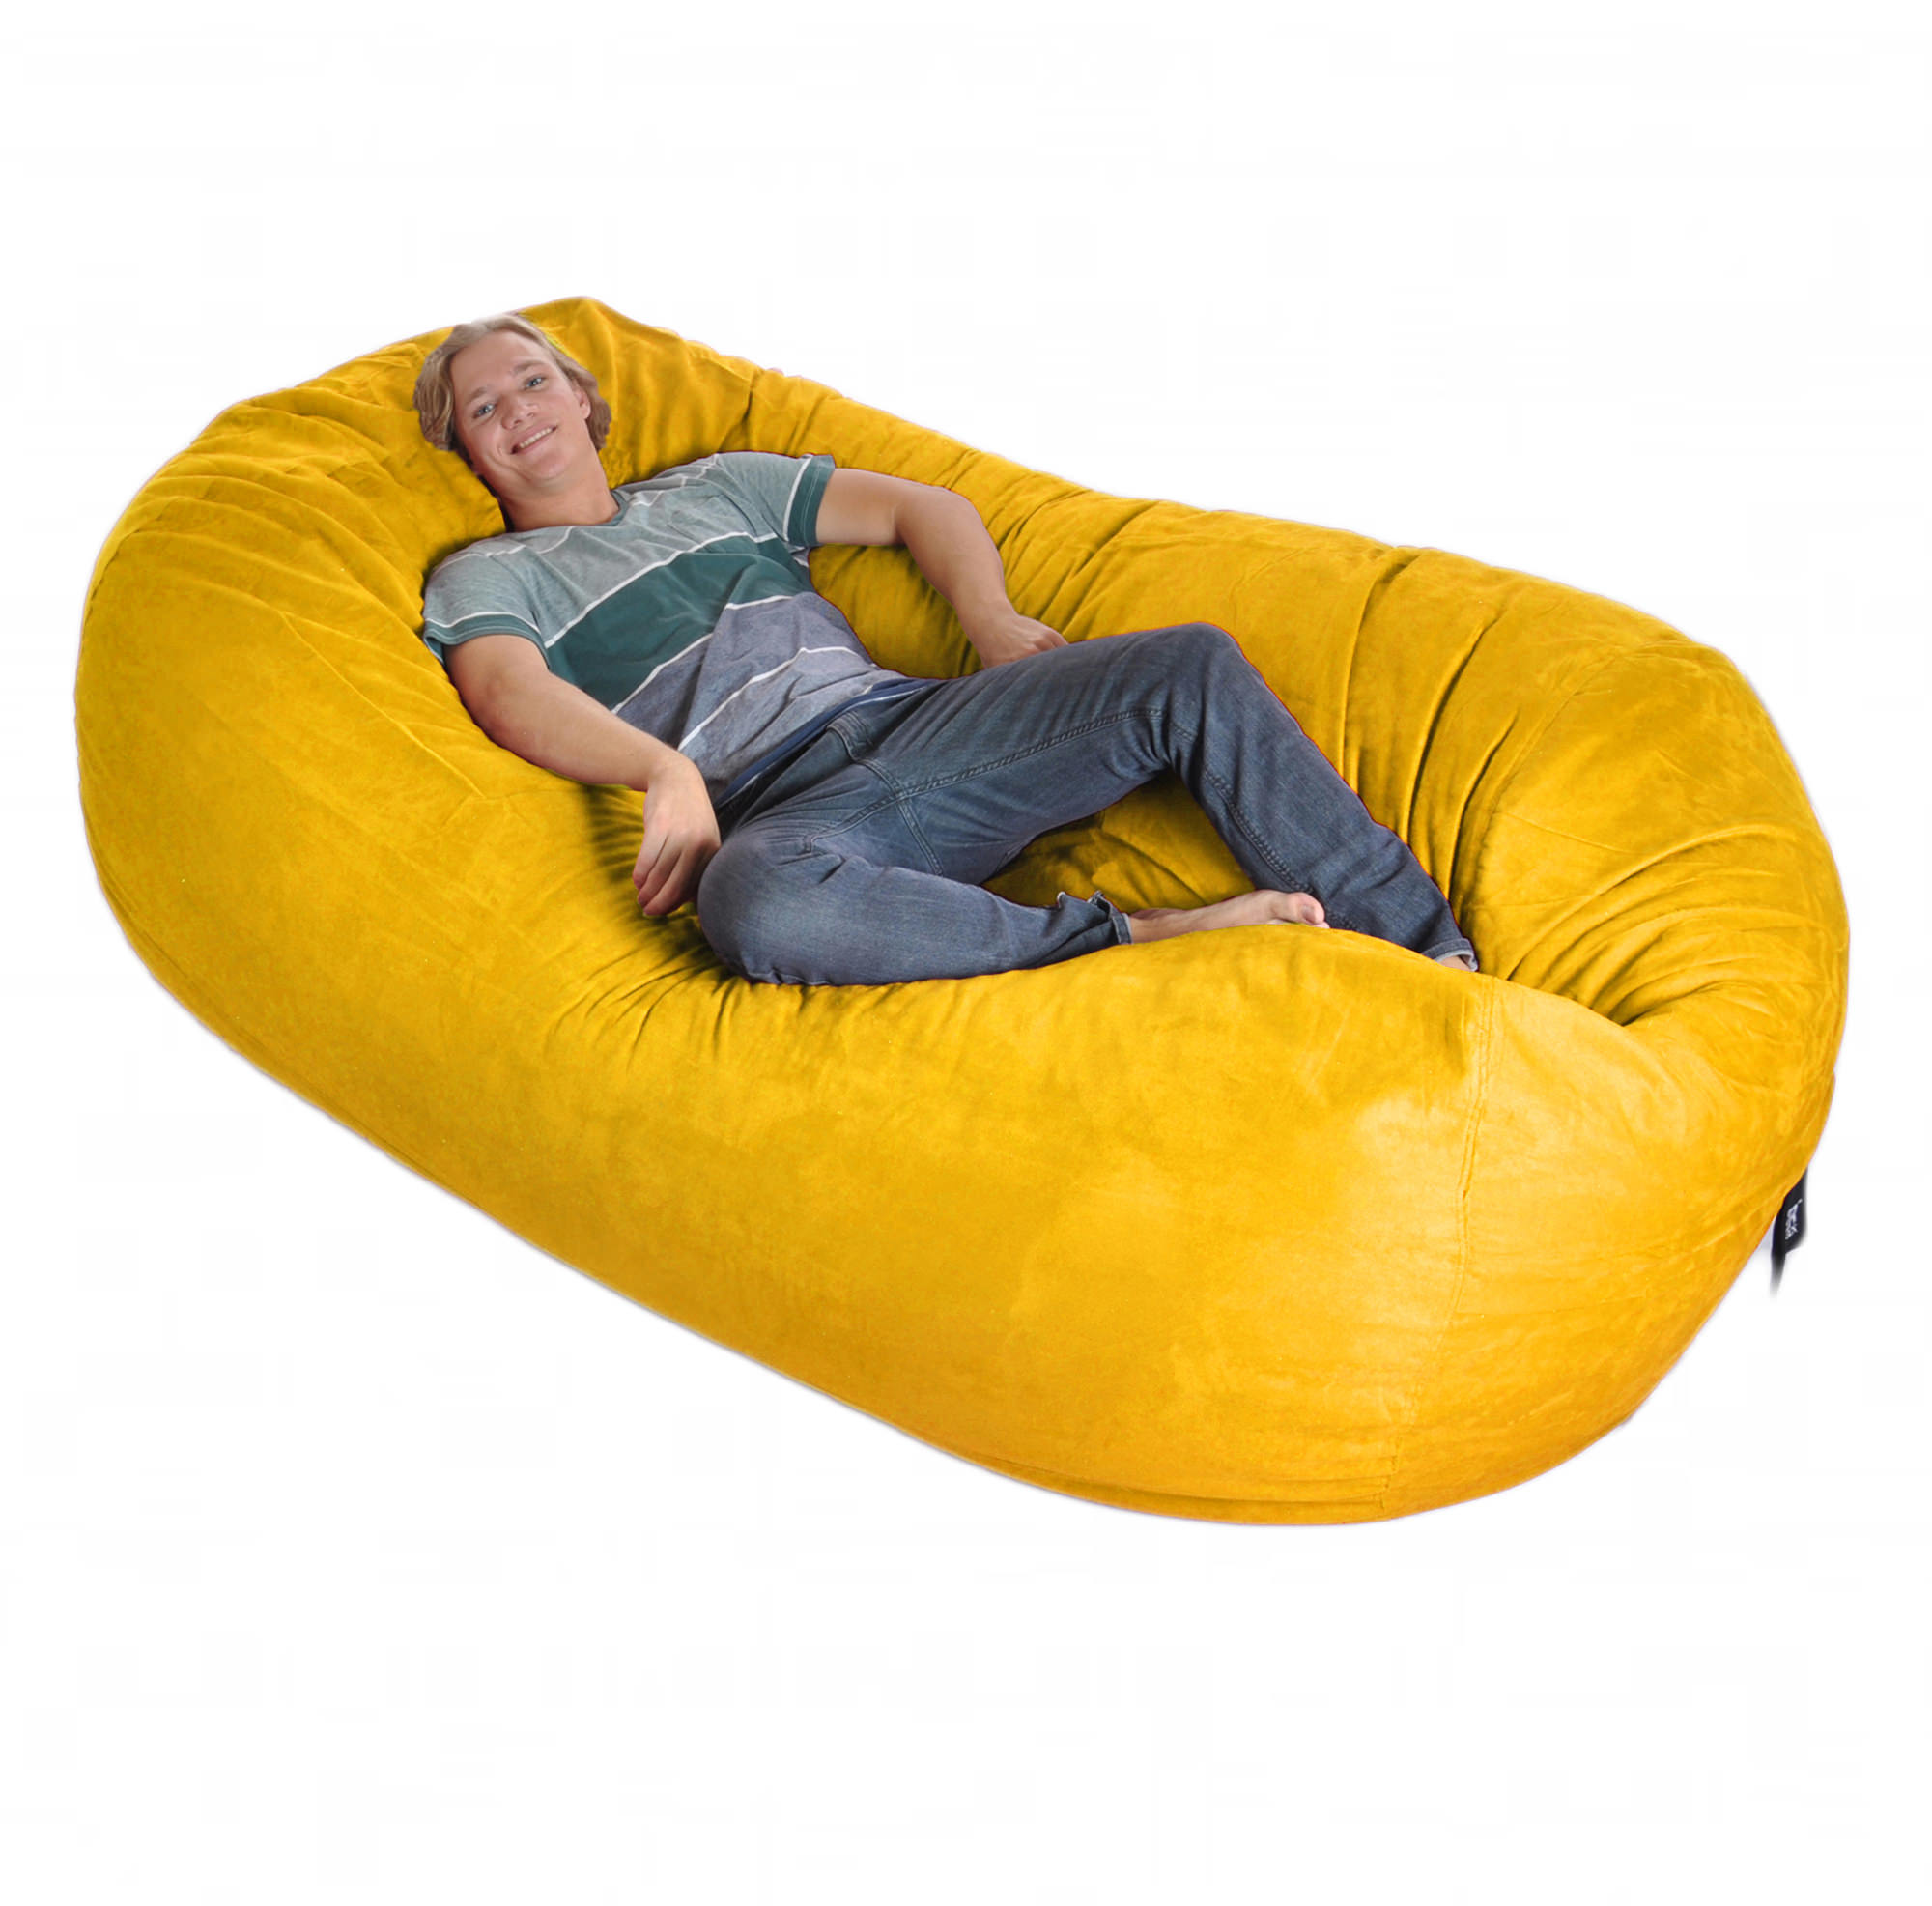 Adult Size Bean Bag Chair Negozio Di Sconti Online Bean Bags Adult Giant Size Yellow